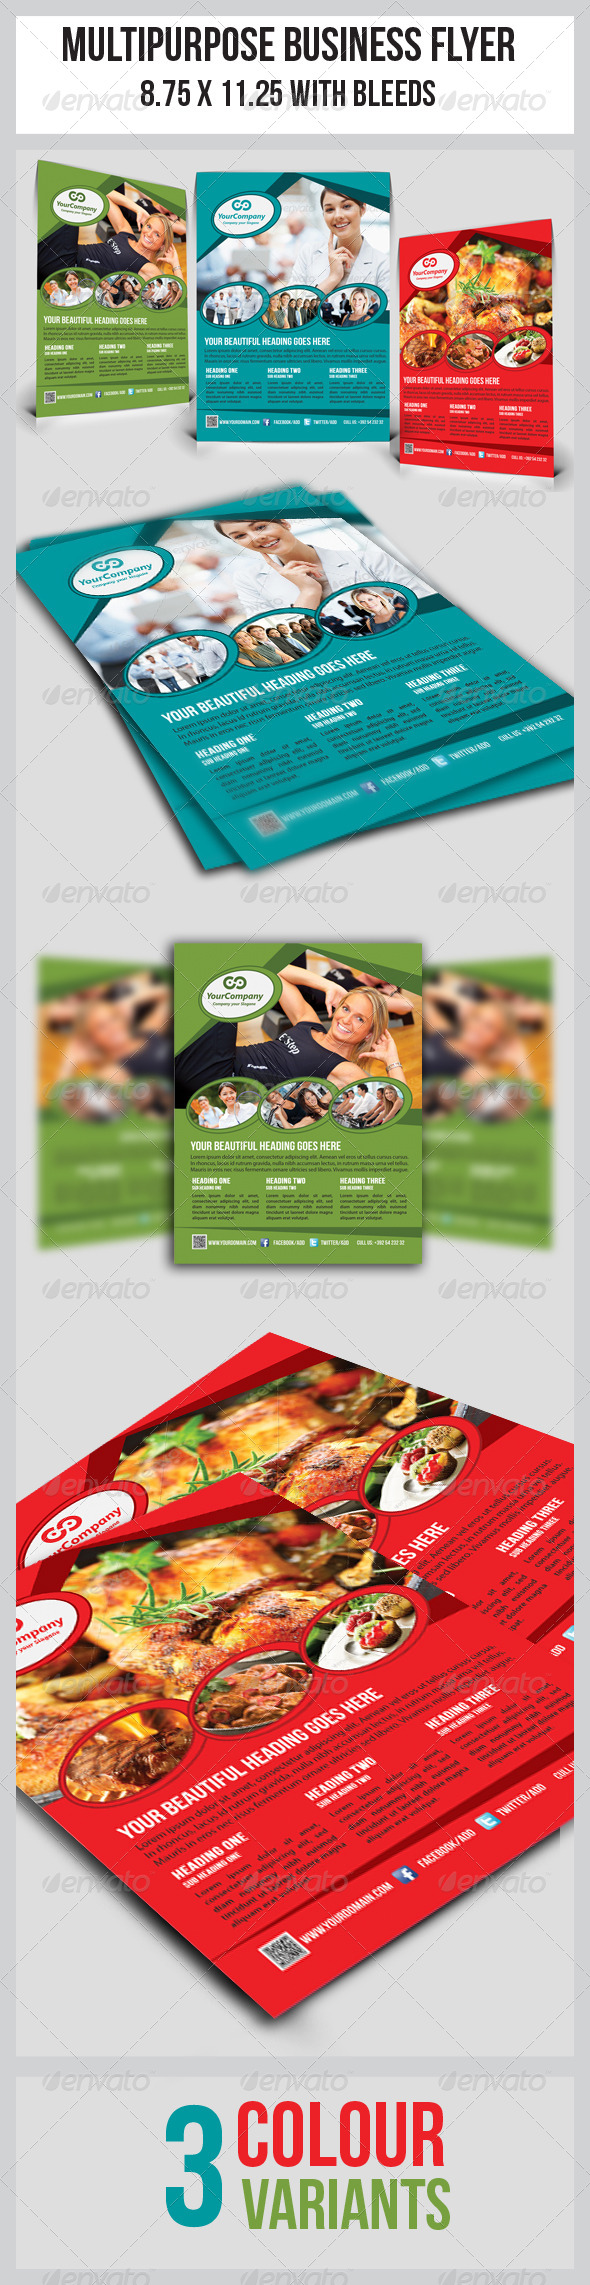 GraphicRiver Multipurpose Business Flyer 4963021